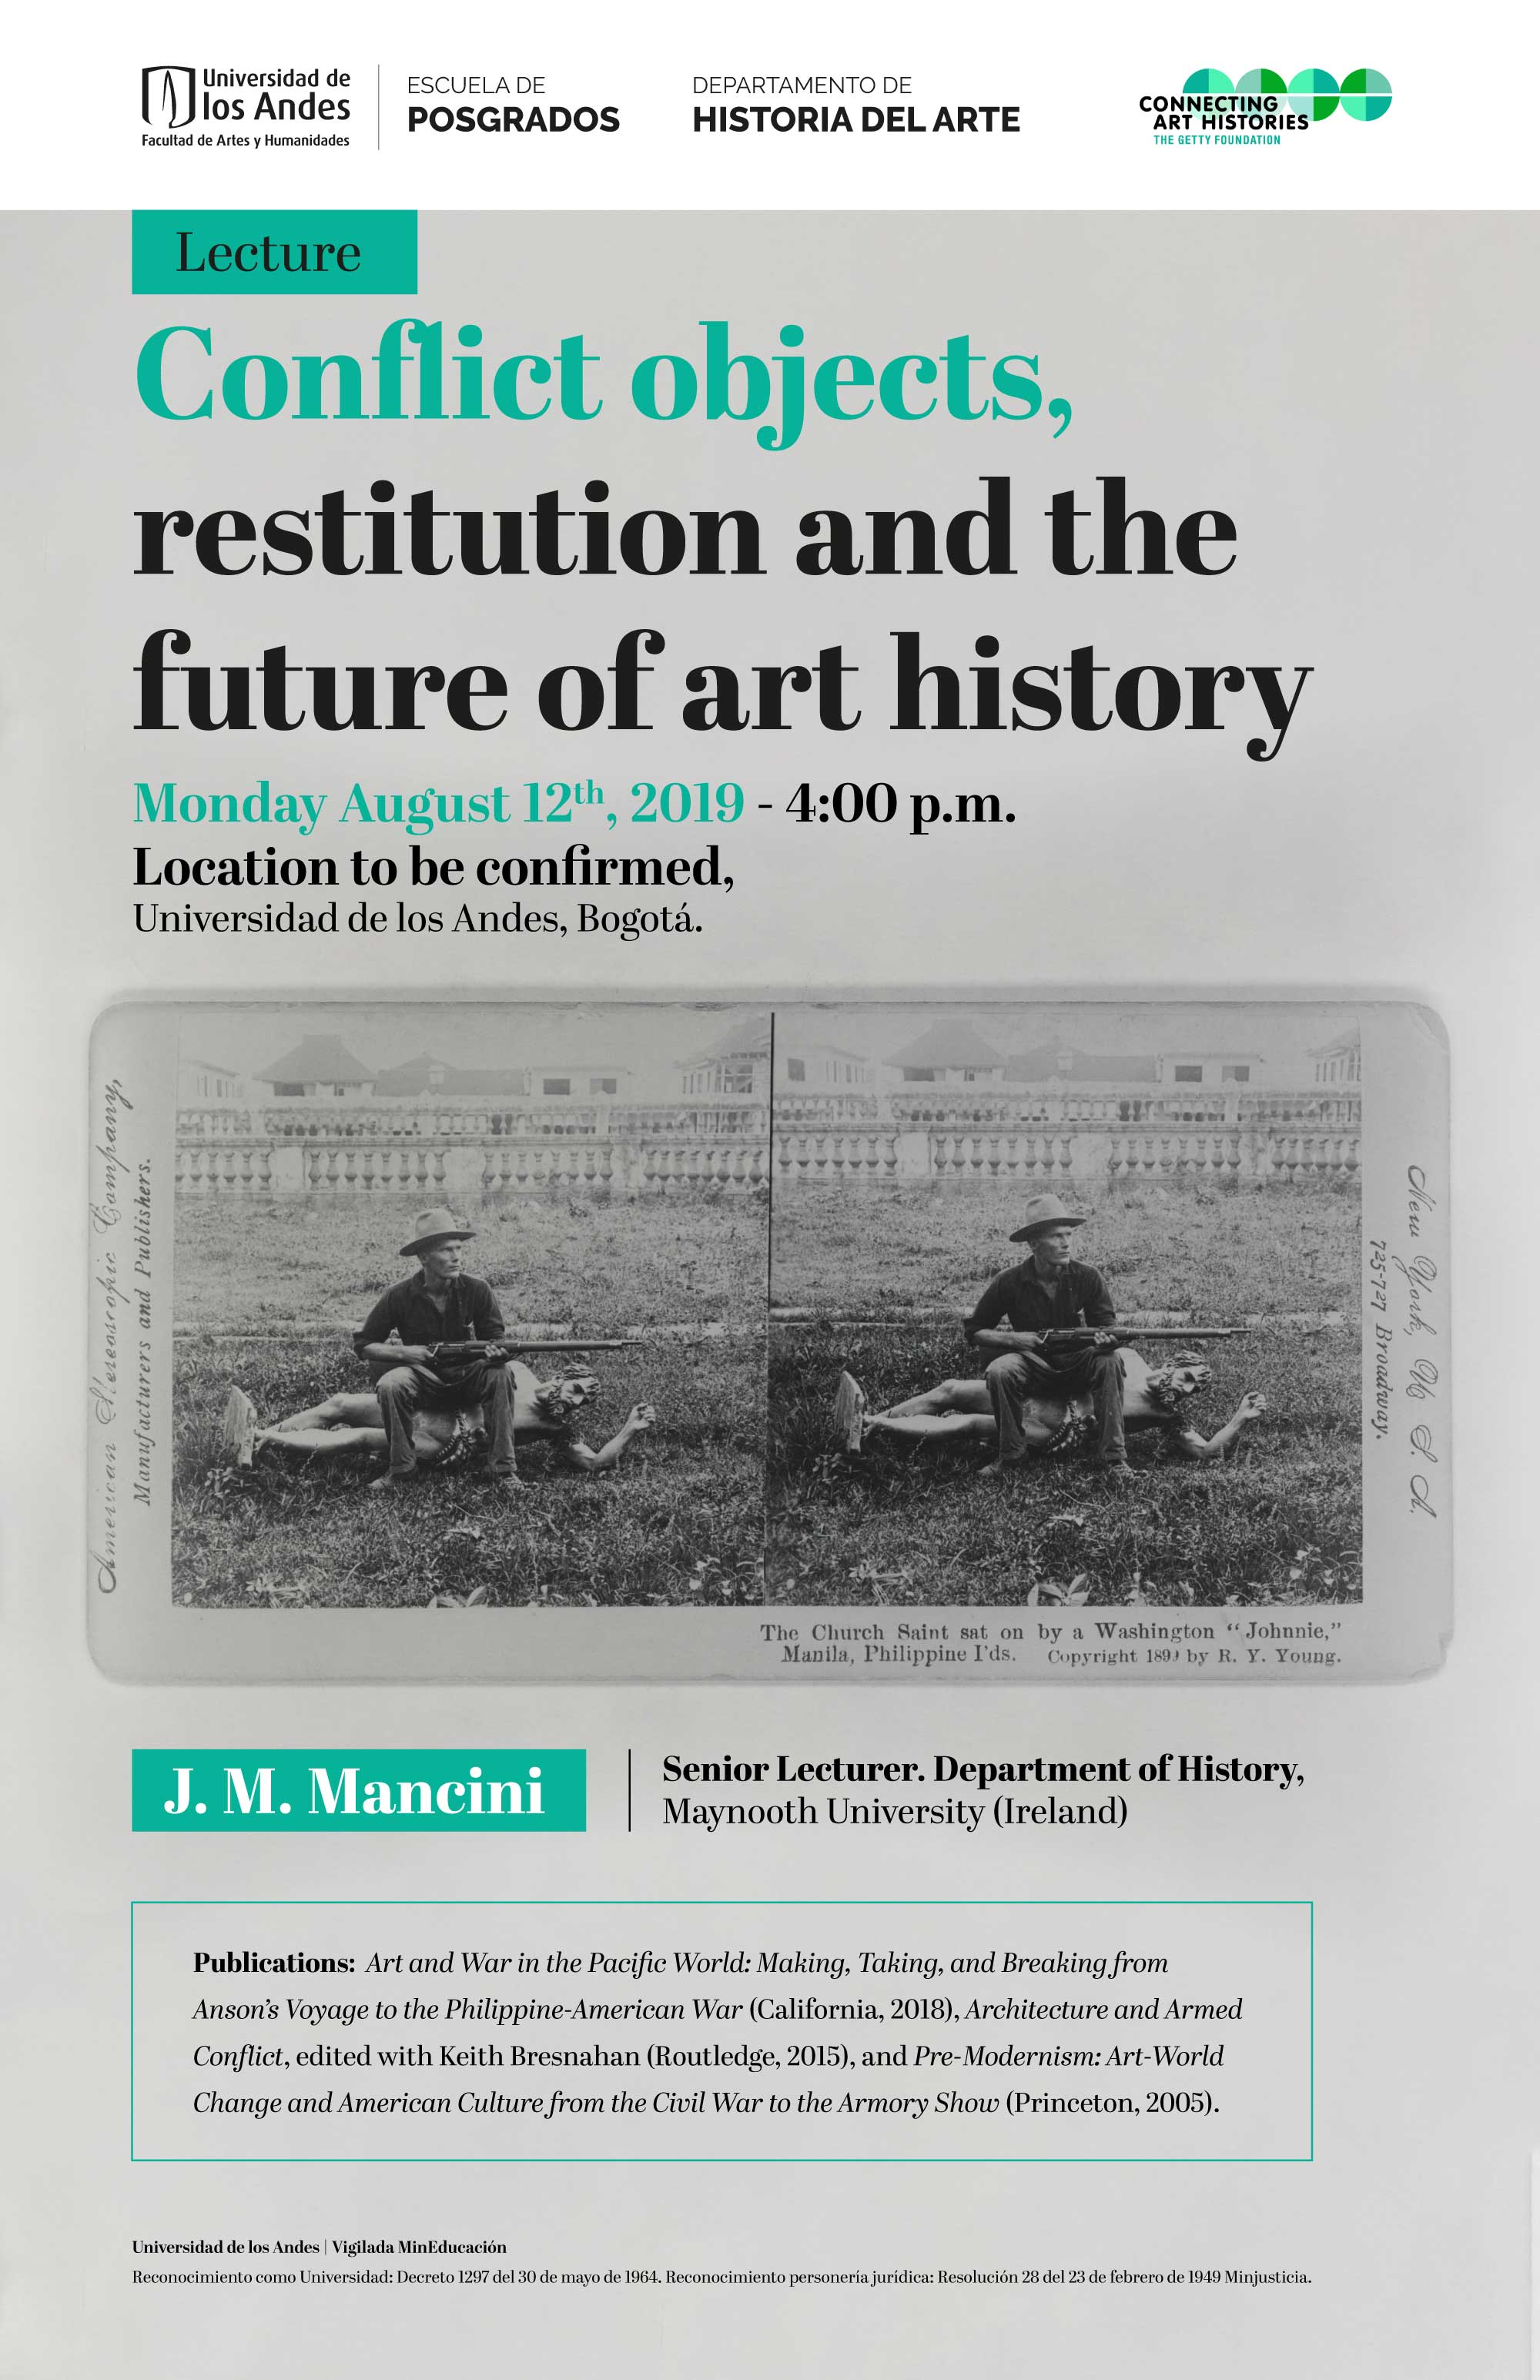 Conflict objects, restitution and the future of art history